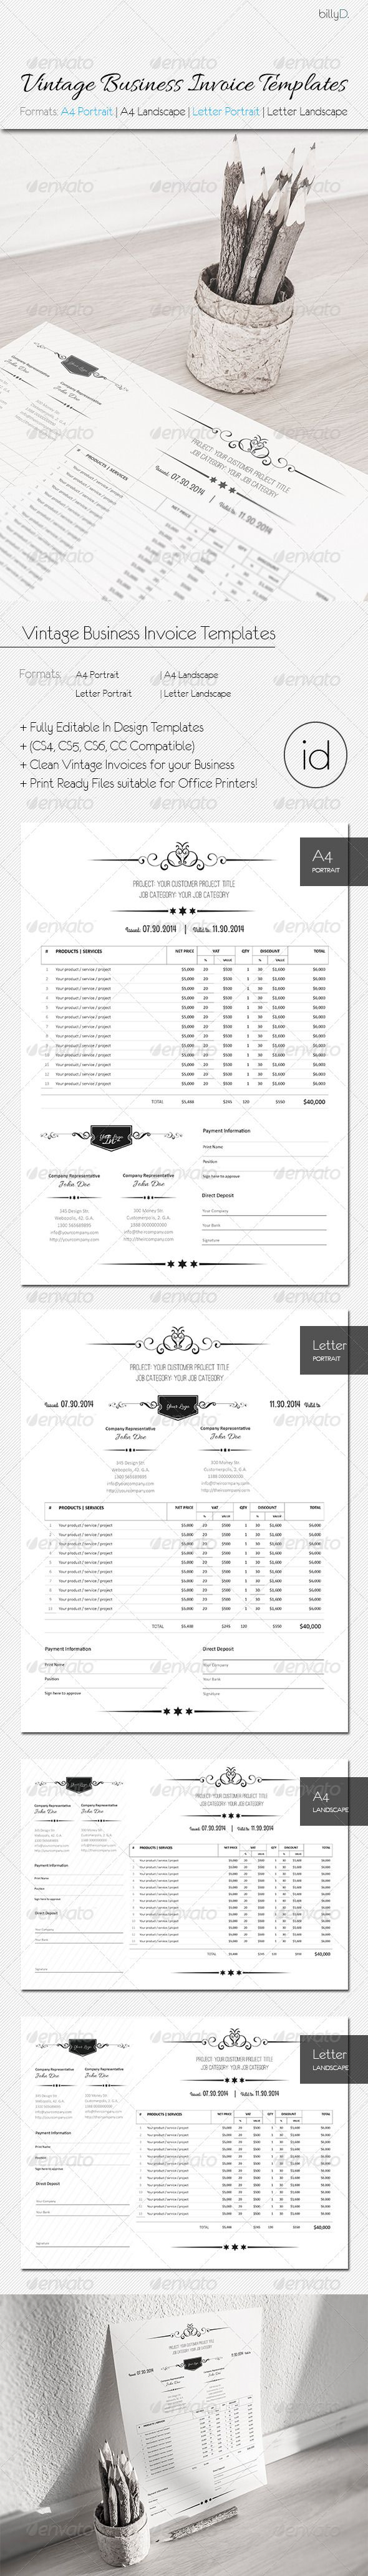 Best Templates Devis Images On   Invoice Design